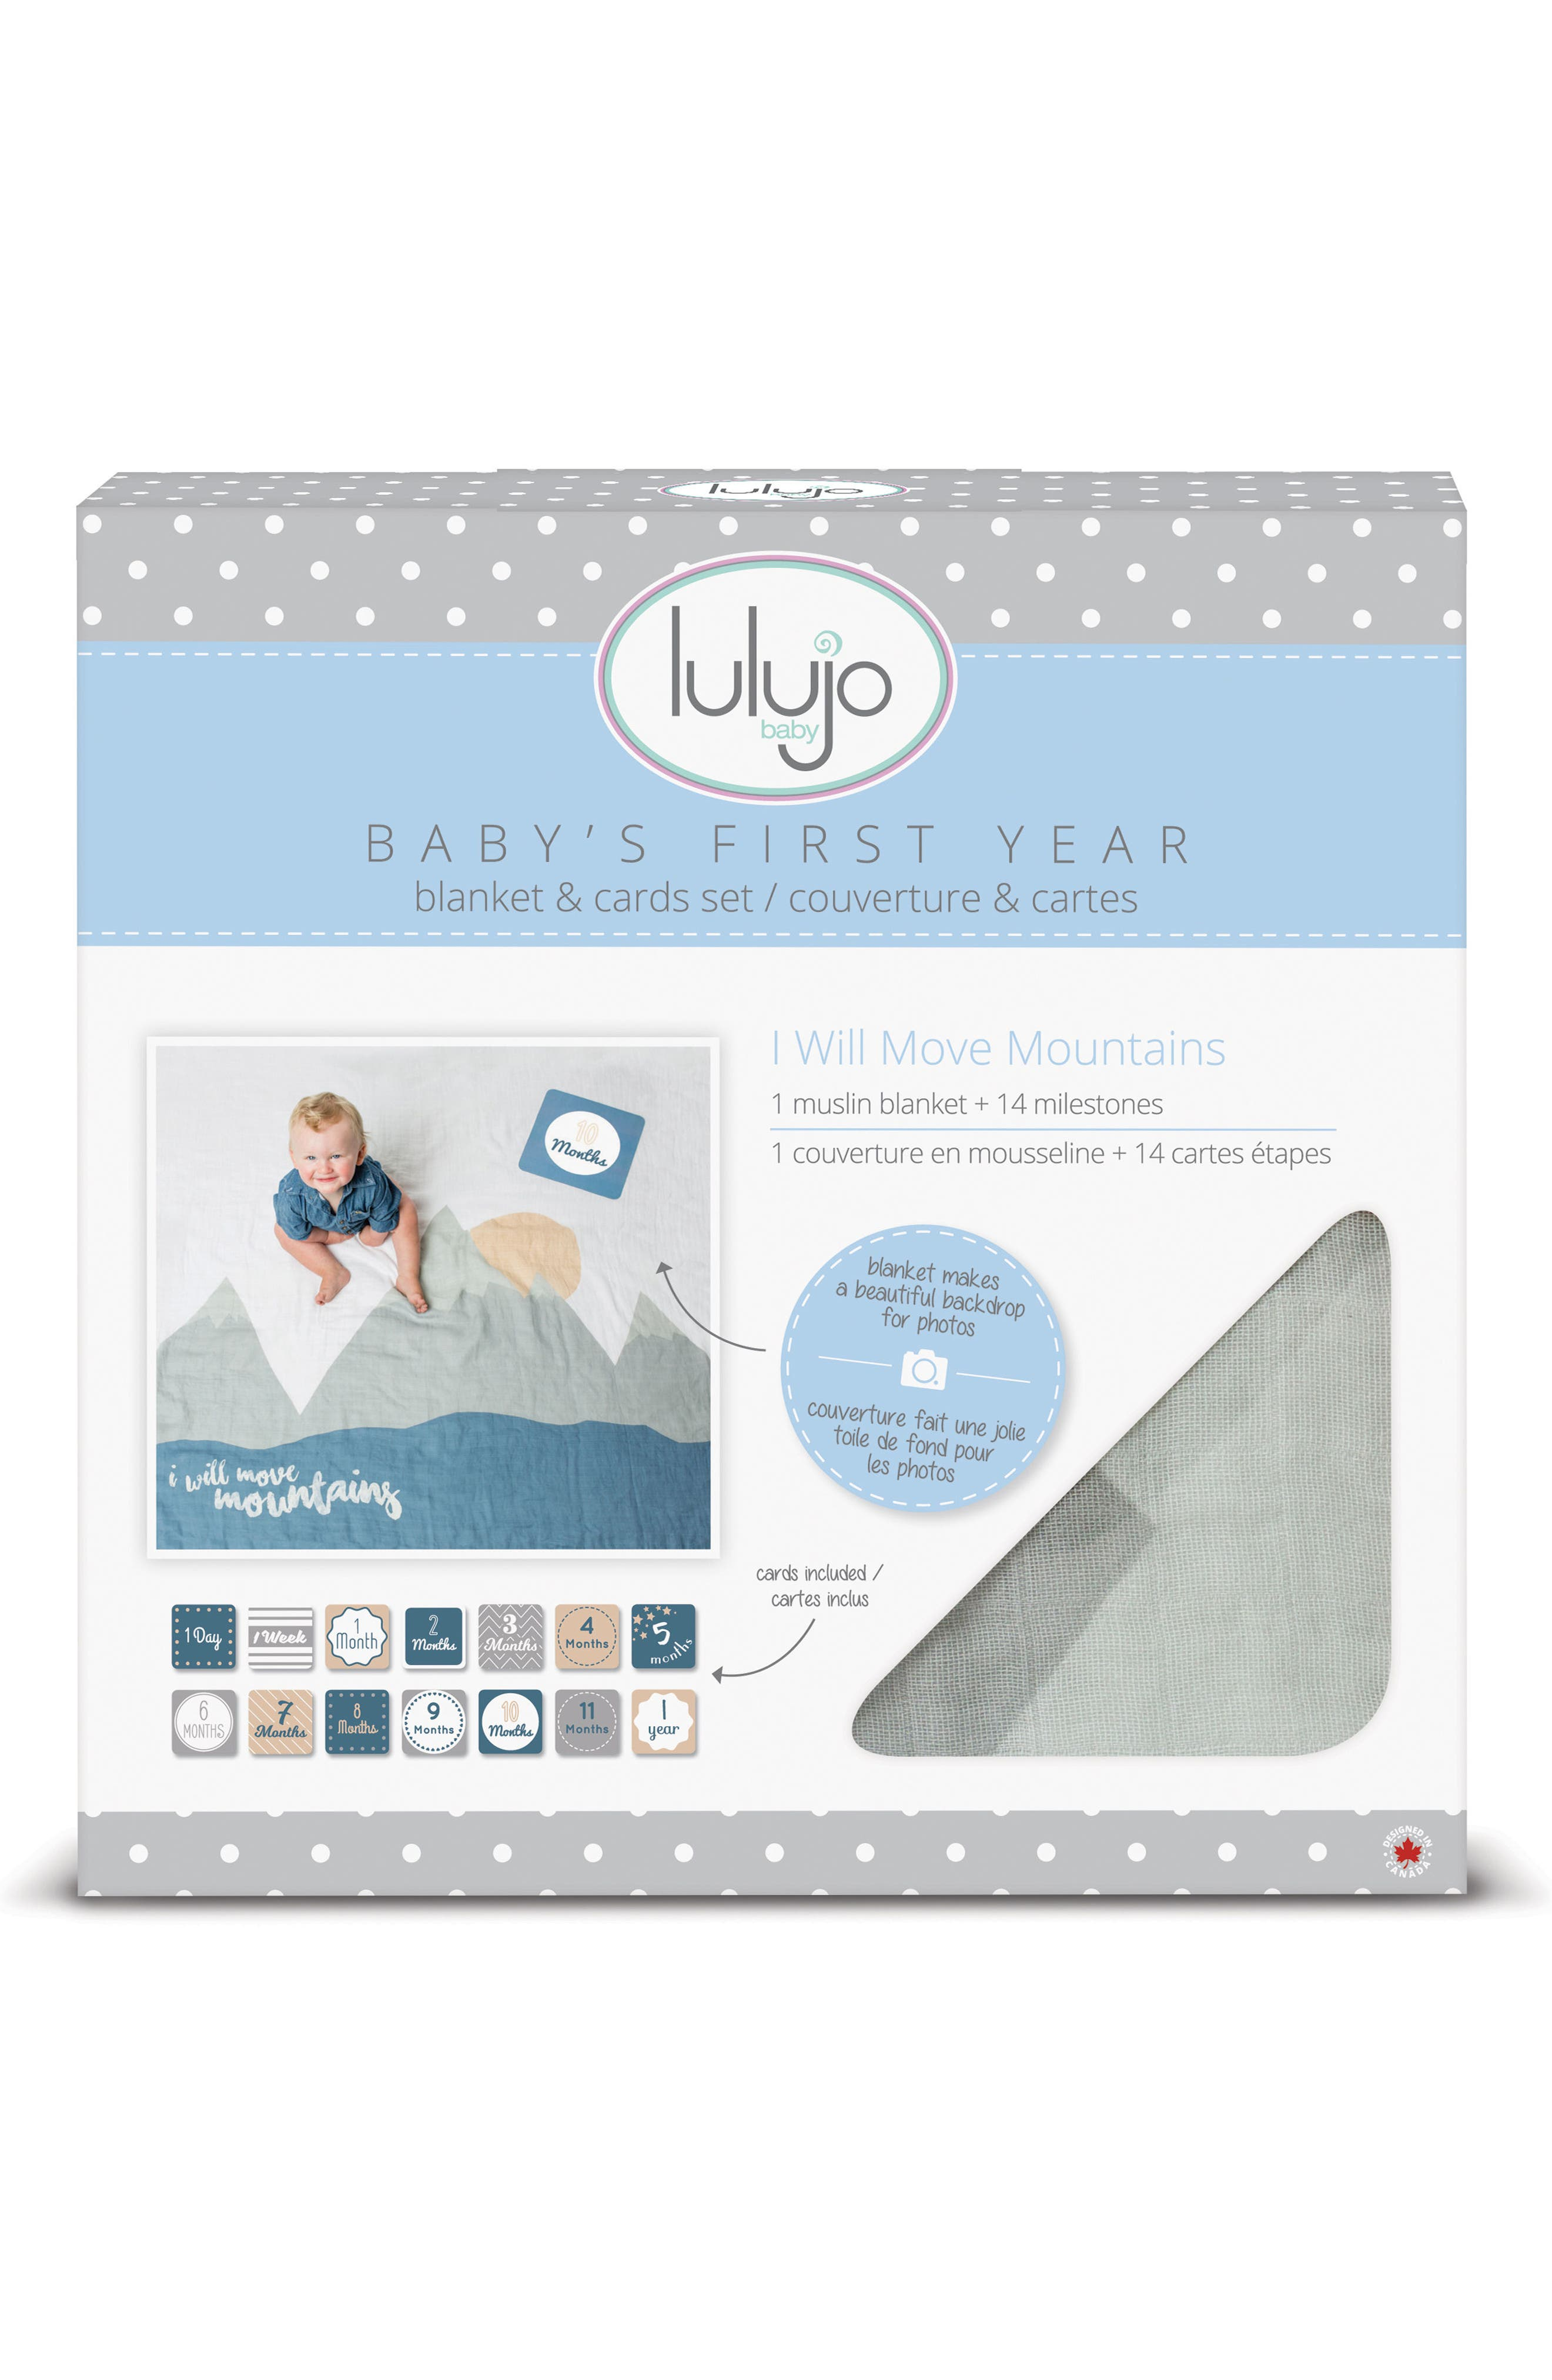 LULUJO, Baby's First Year - I Will Move Mountains Muslin Blanket & Milestone Card Set, Alternate thumbnail 2, color, WILL MOVE MOUNTAINS